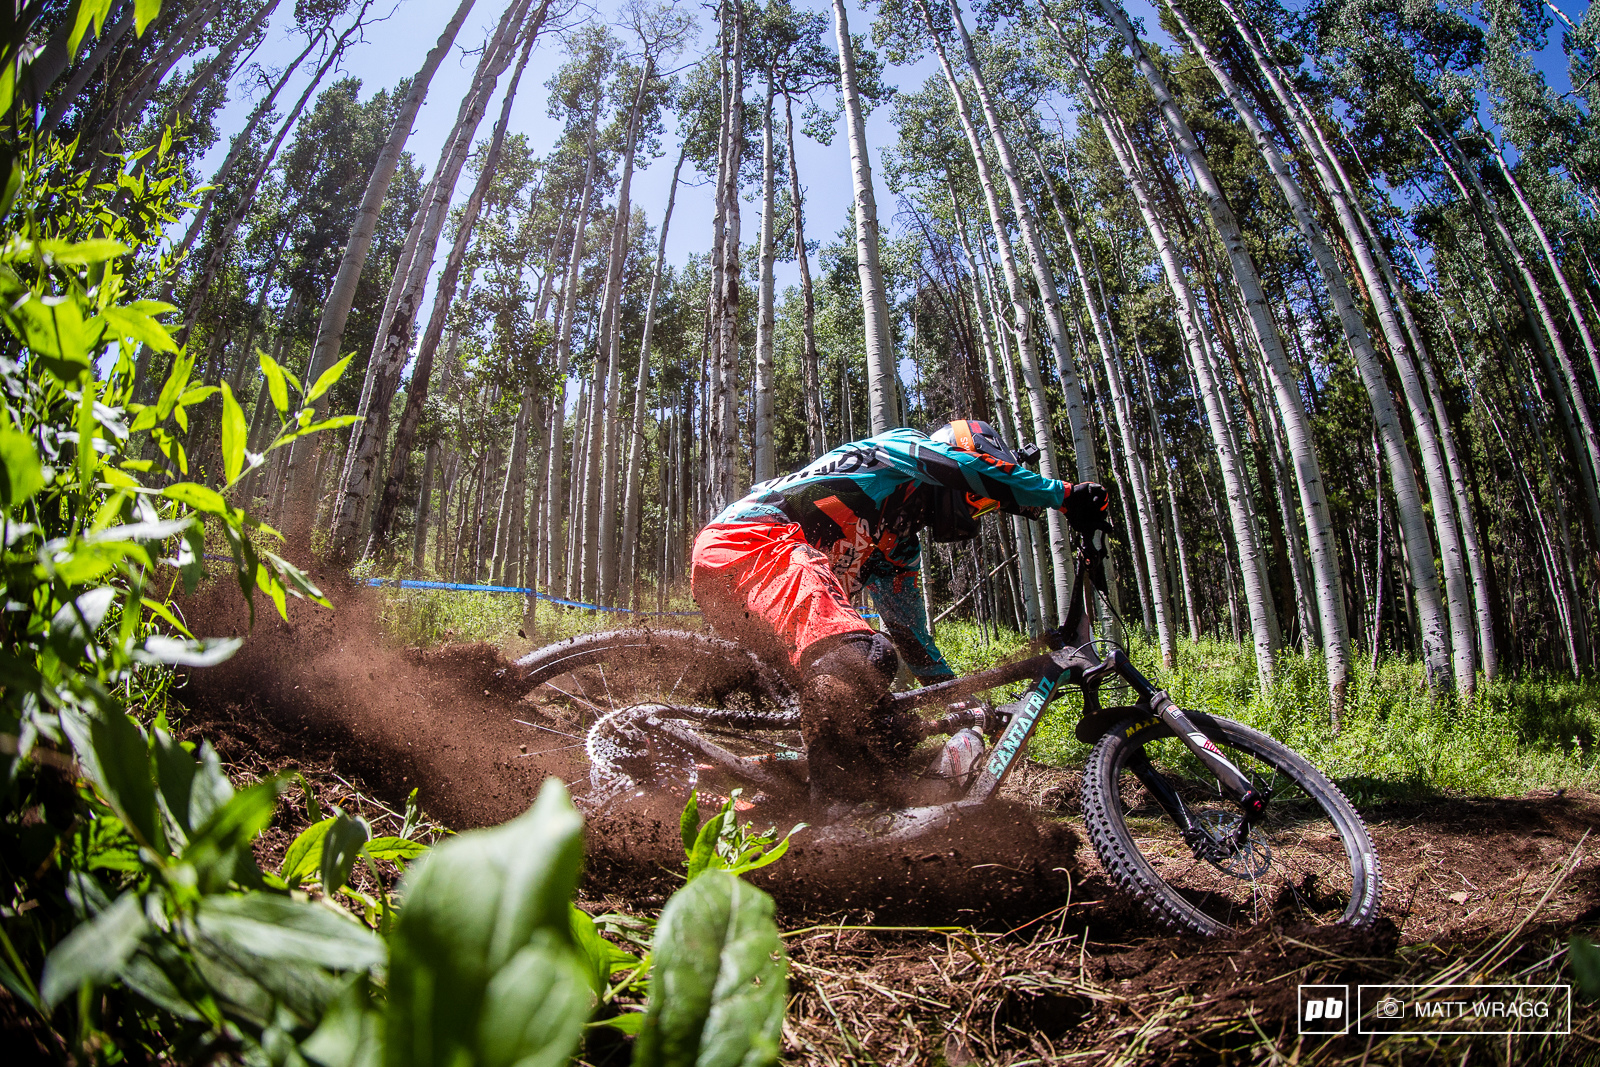 Where there is fresh soft dirt on course Iago Garay knows how to make the most of it...